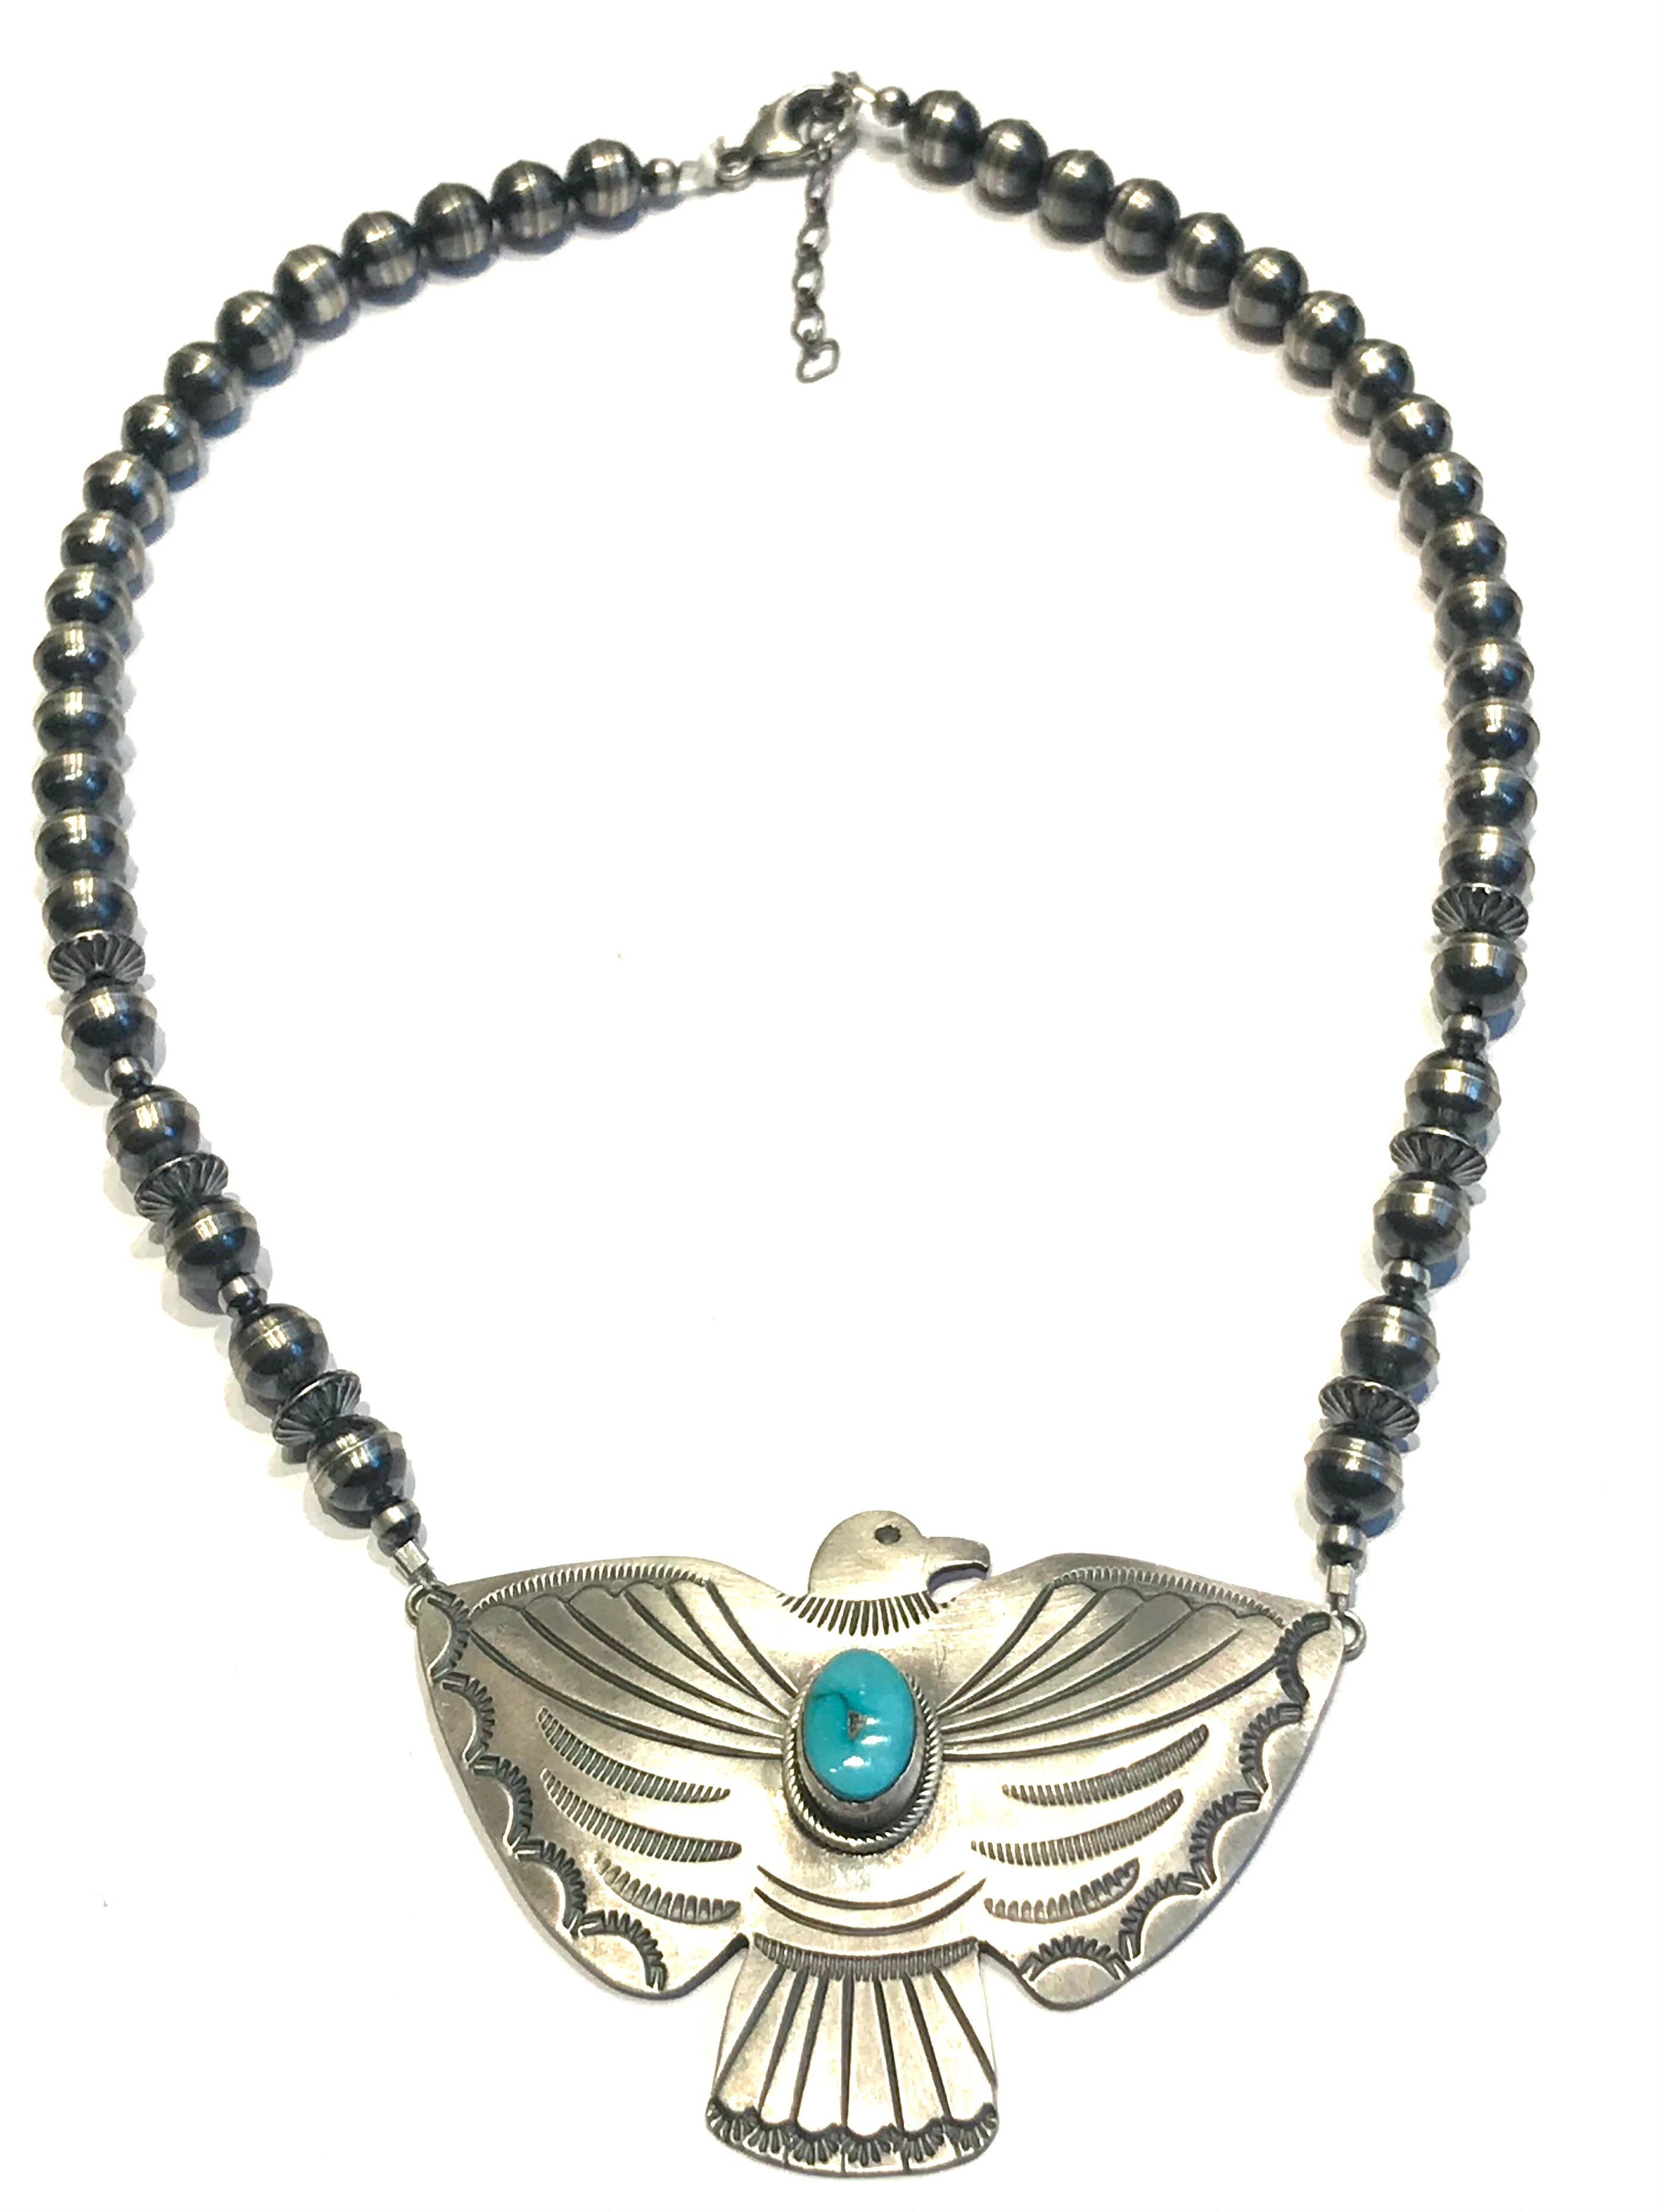 Amazing eagle/ thunderbird Navajo necklace